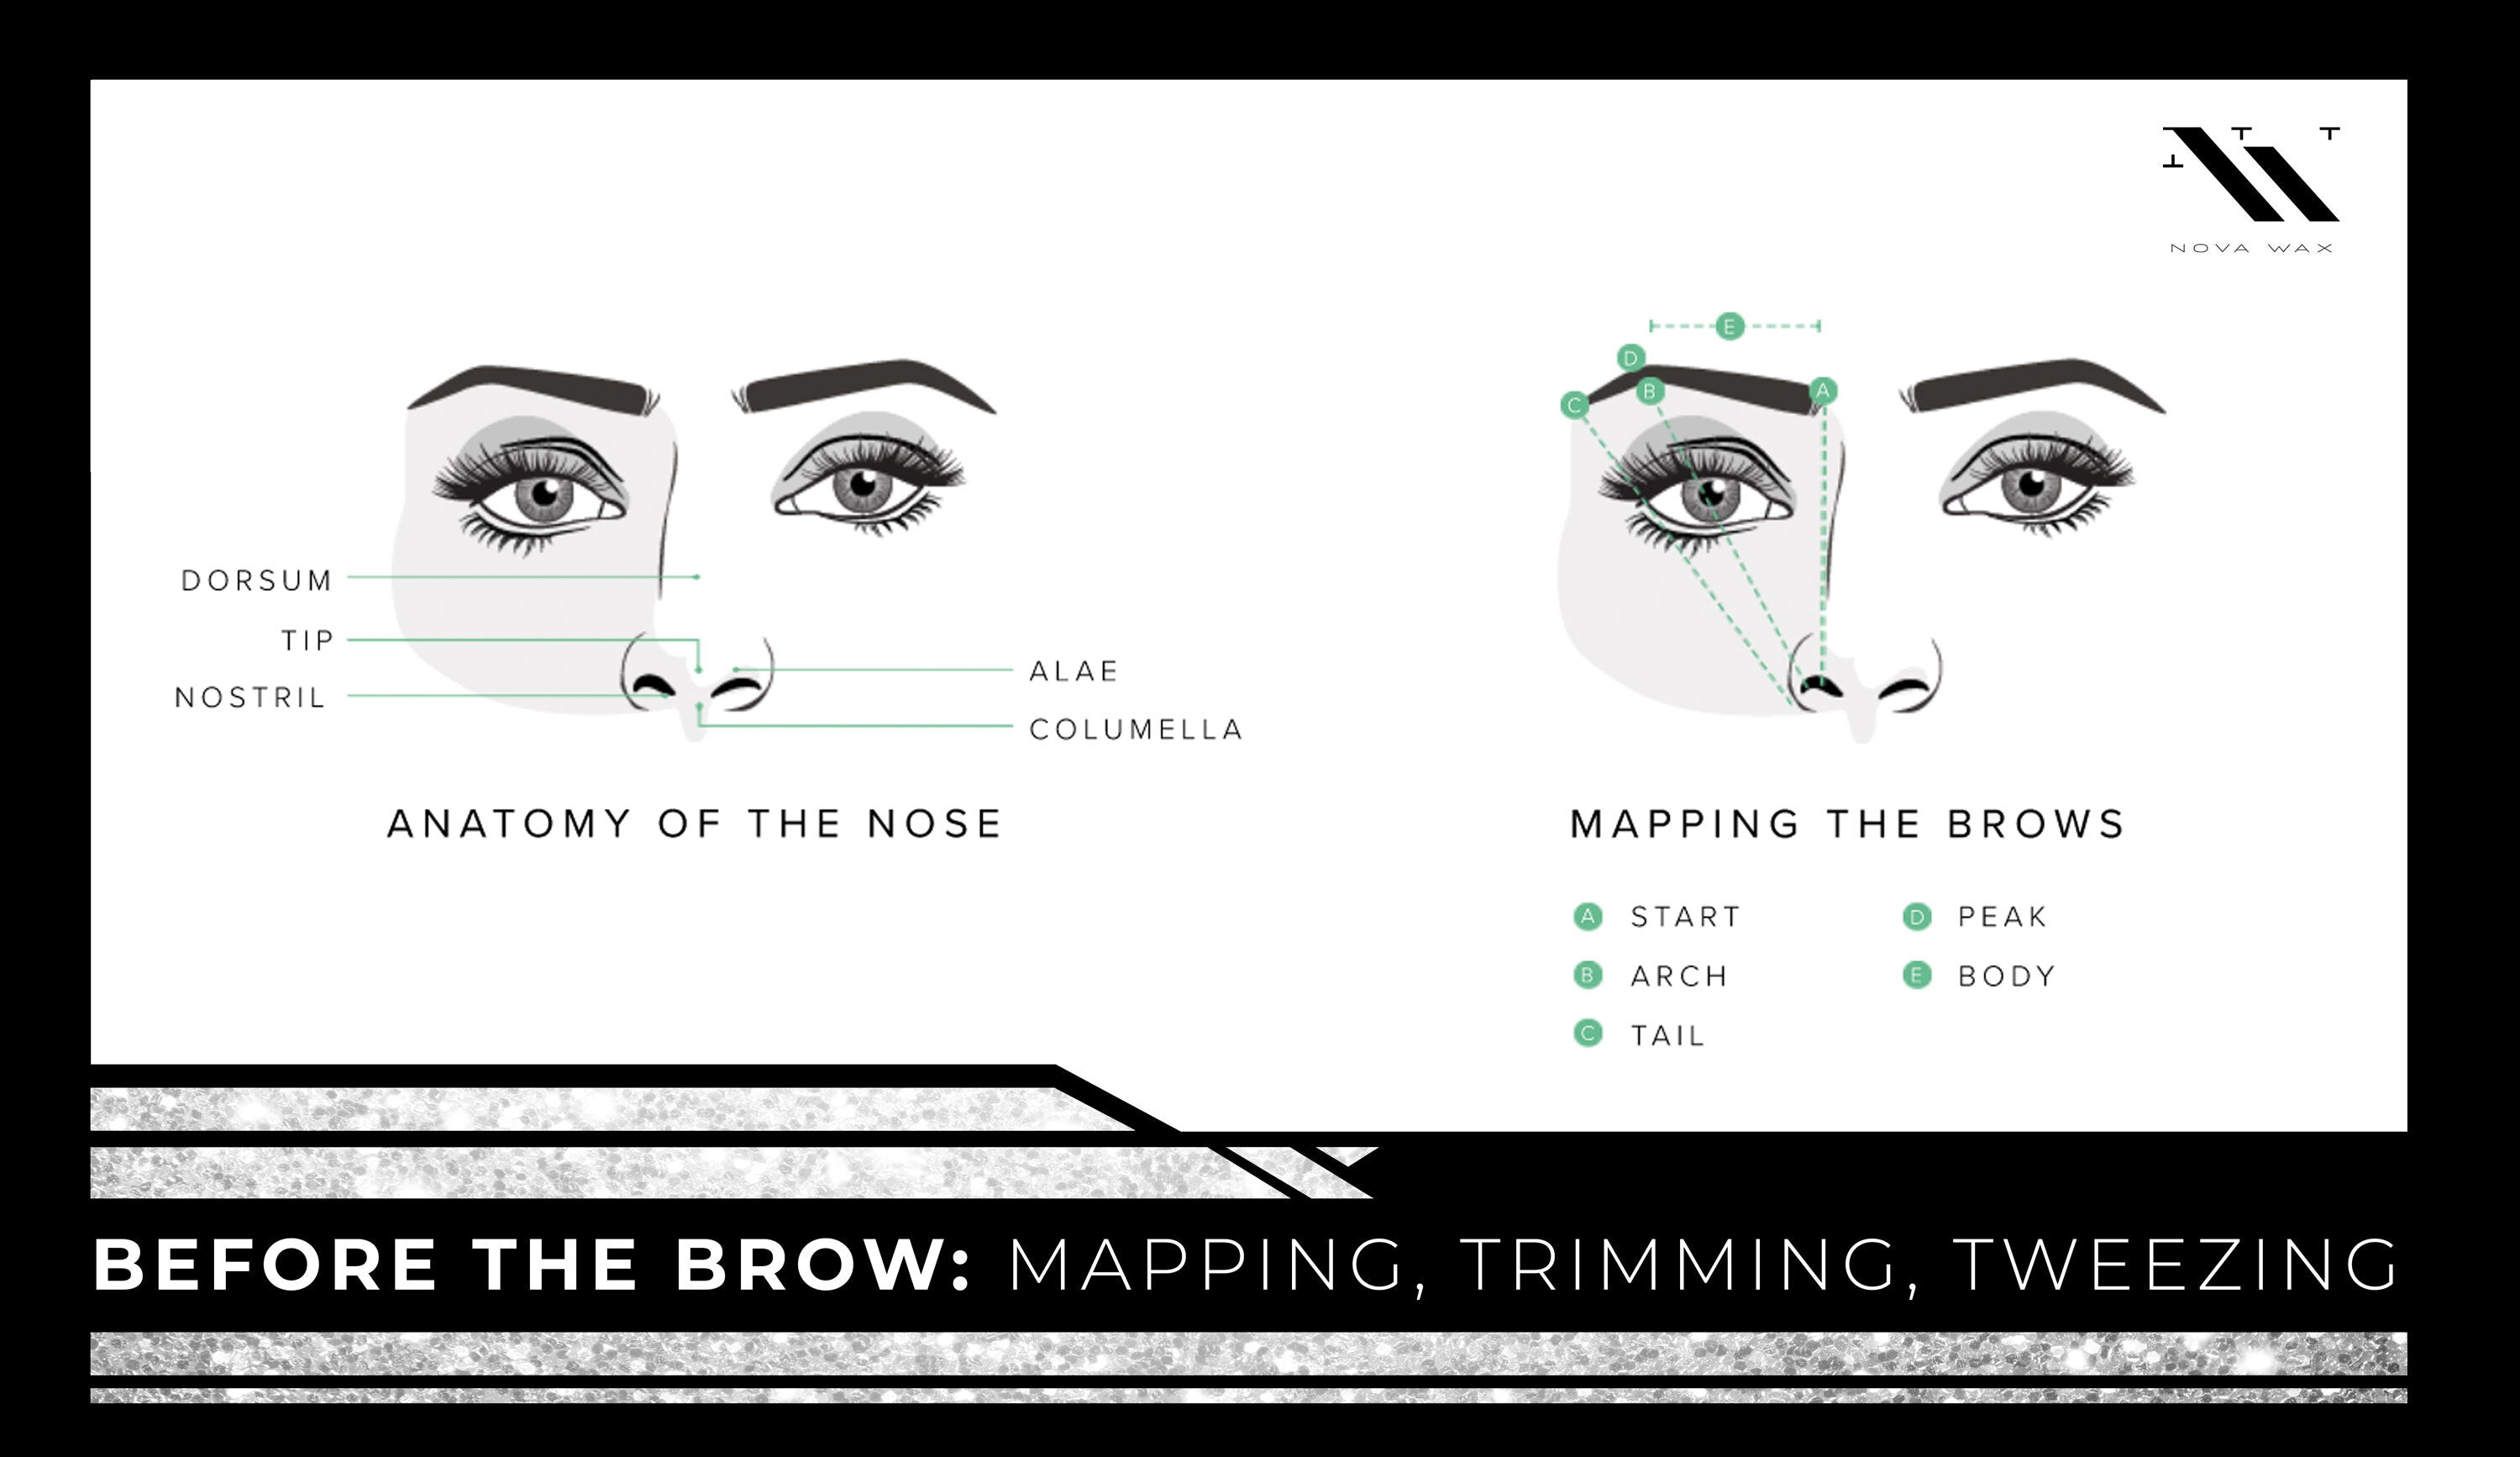 Eyebrow Mapping, Trimming, and Tweezing